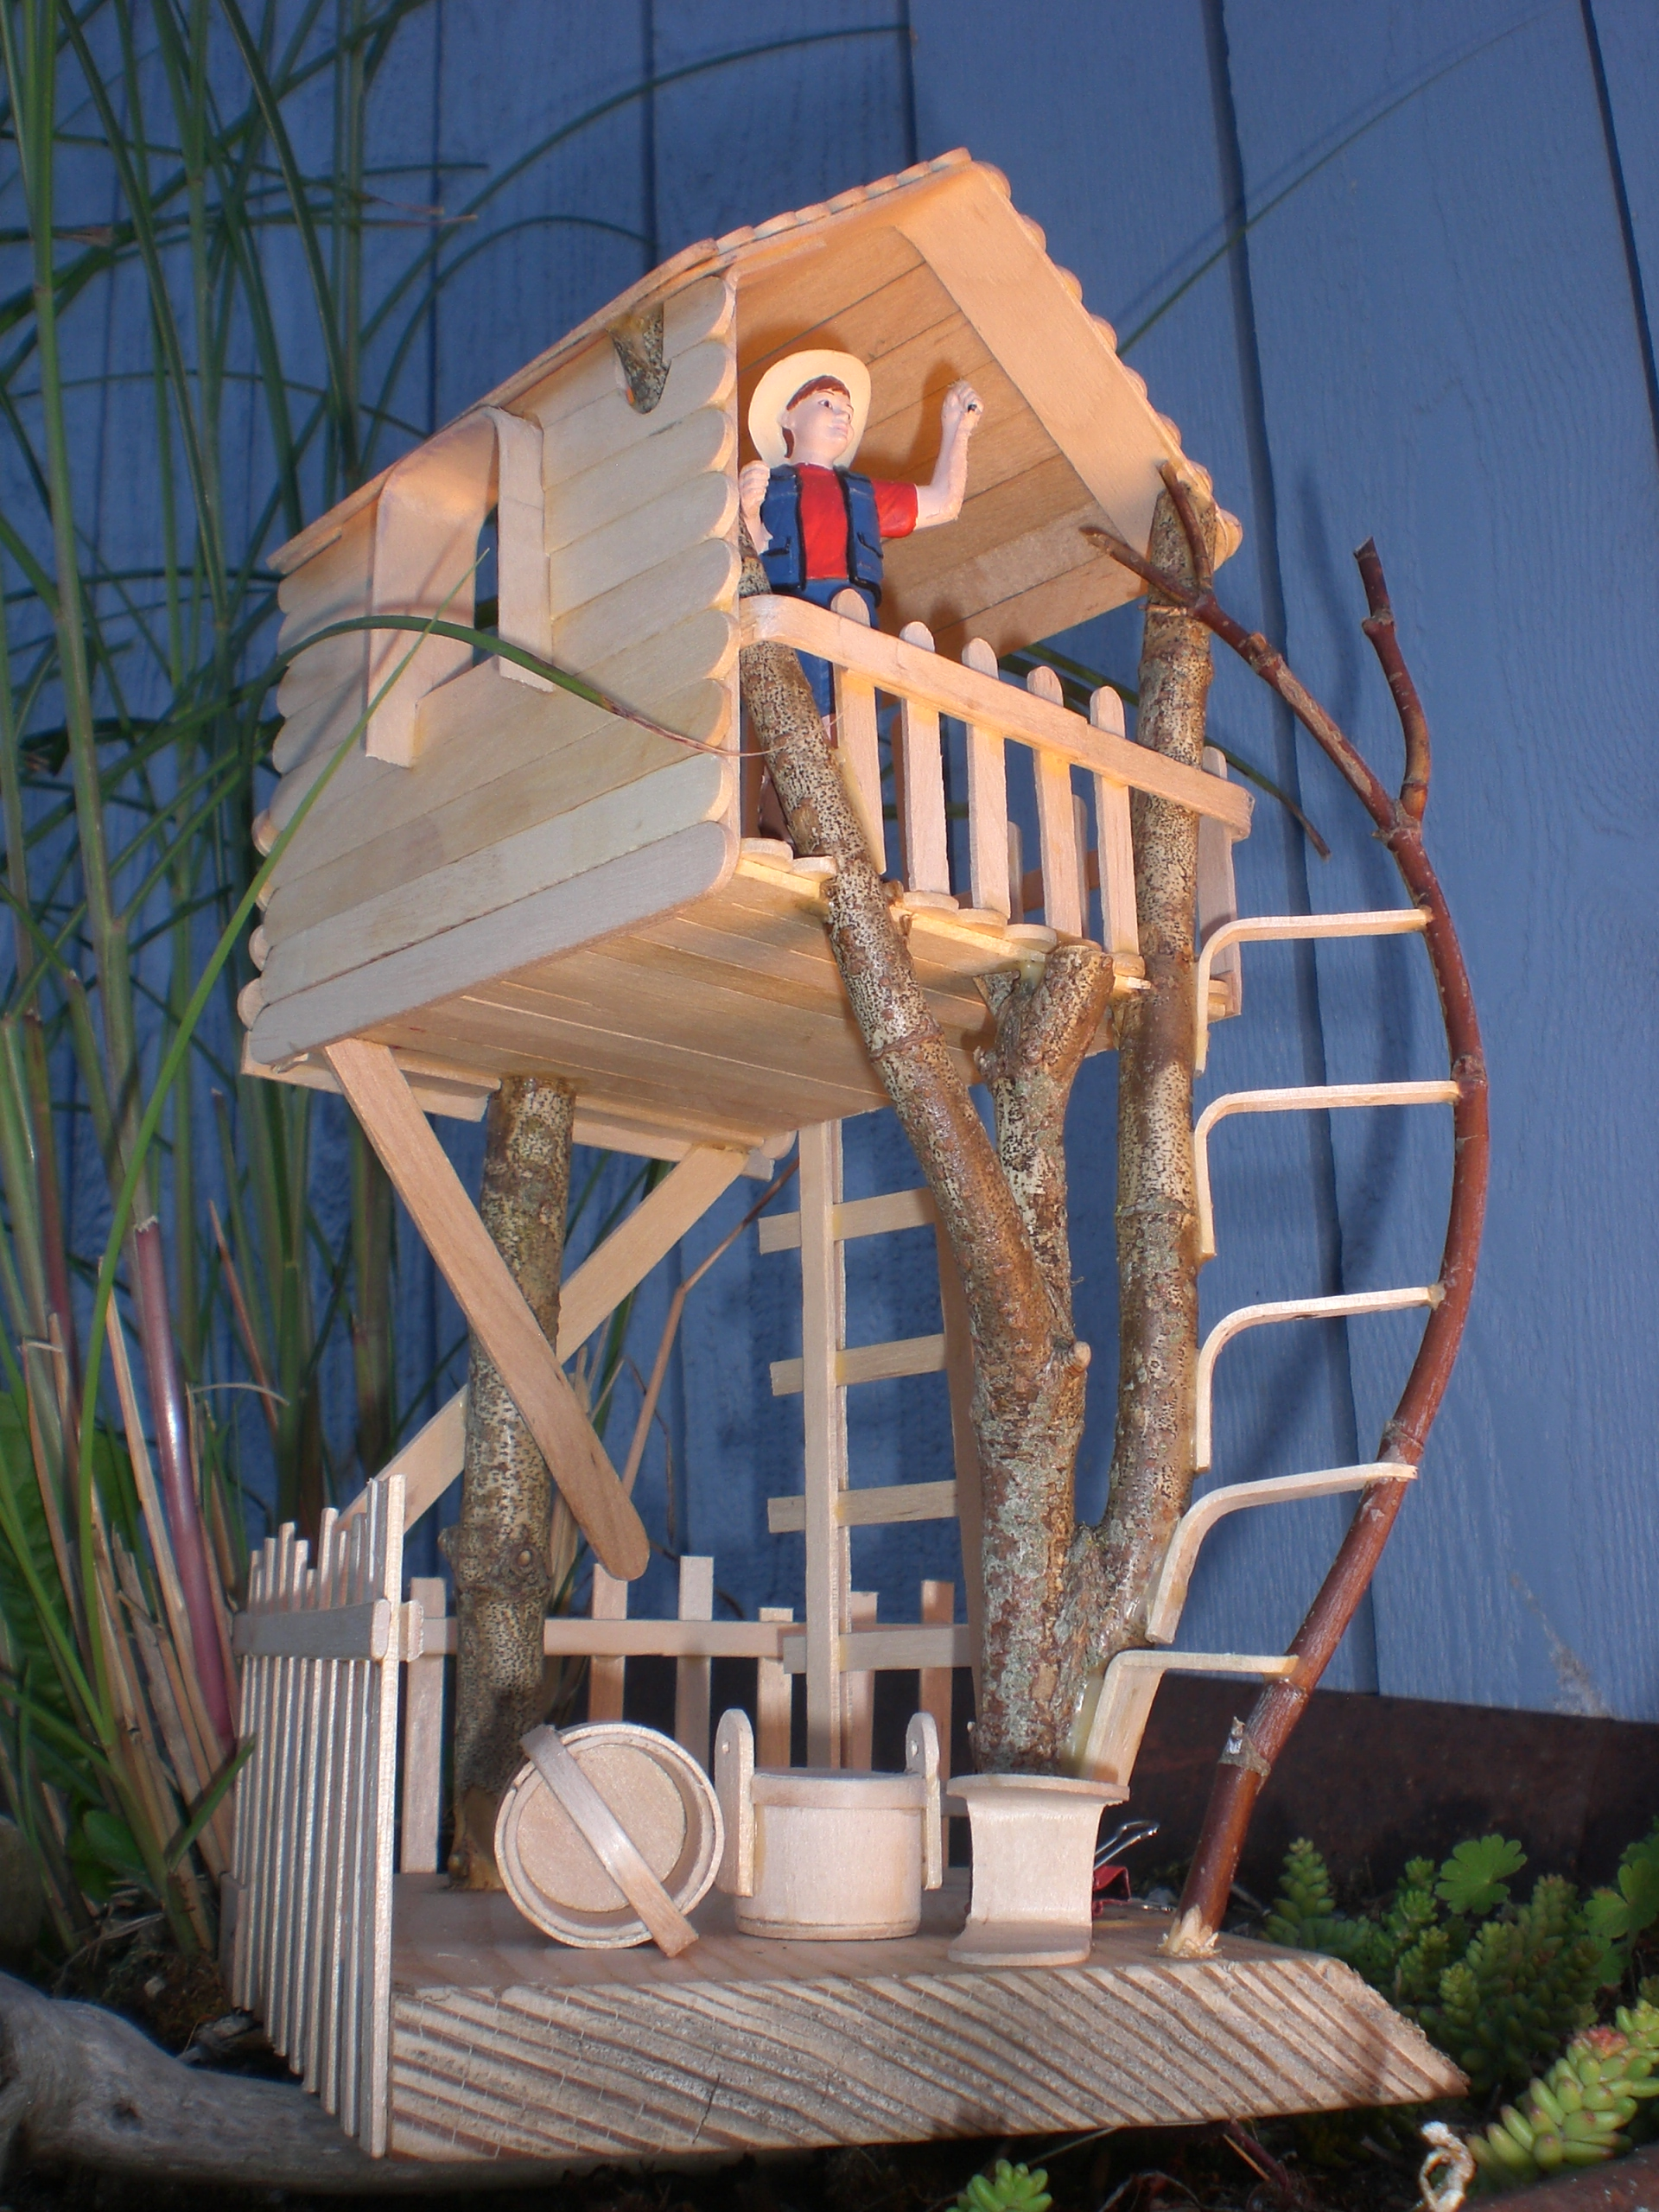 Craft stick branch tree house craft stick crafts for How to build a treehouse with sticks